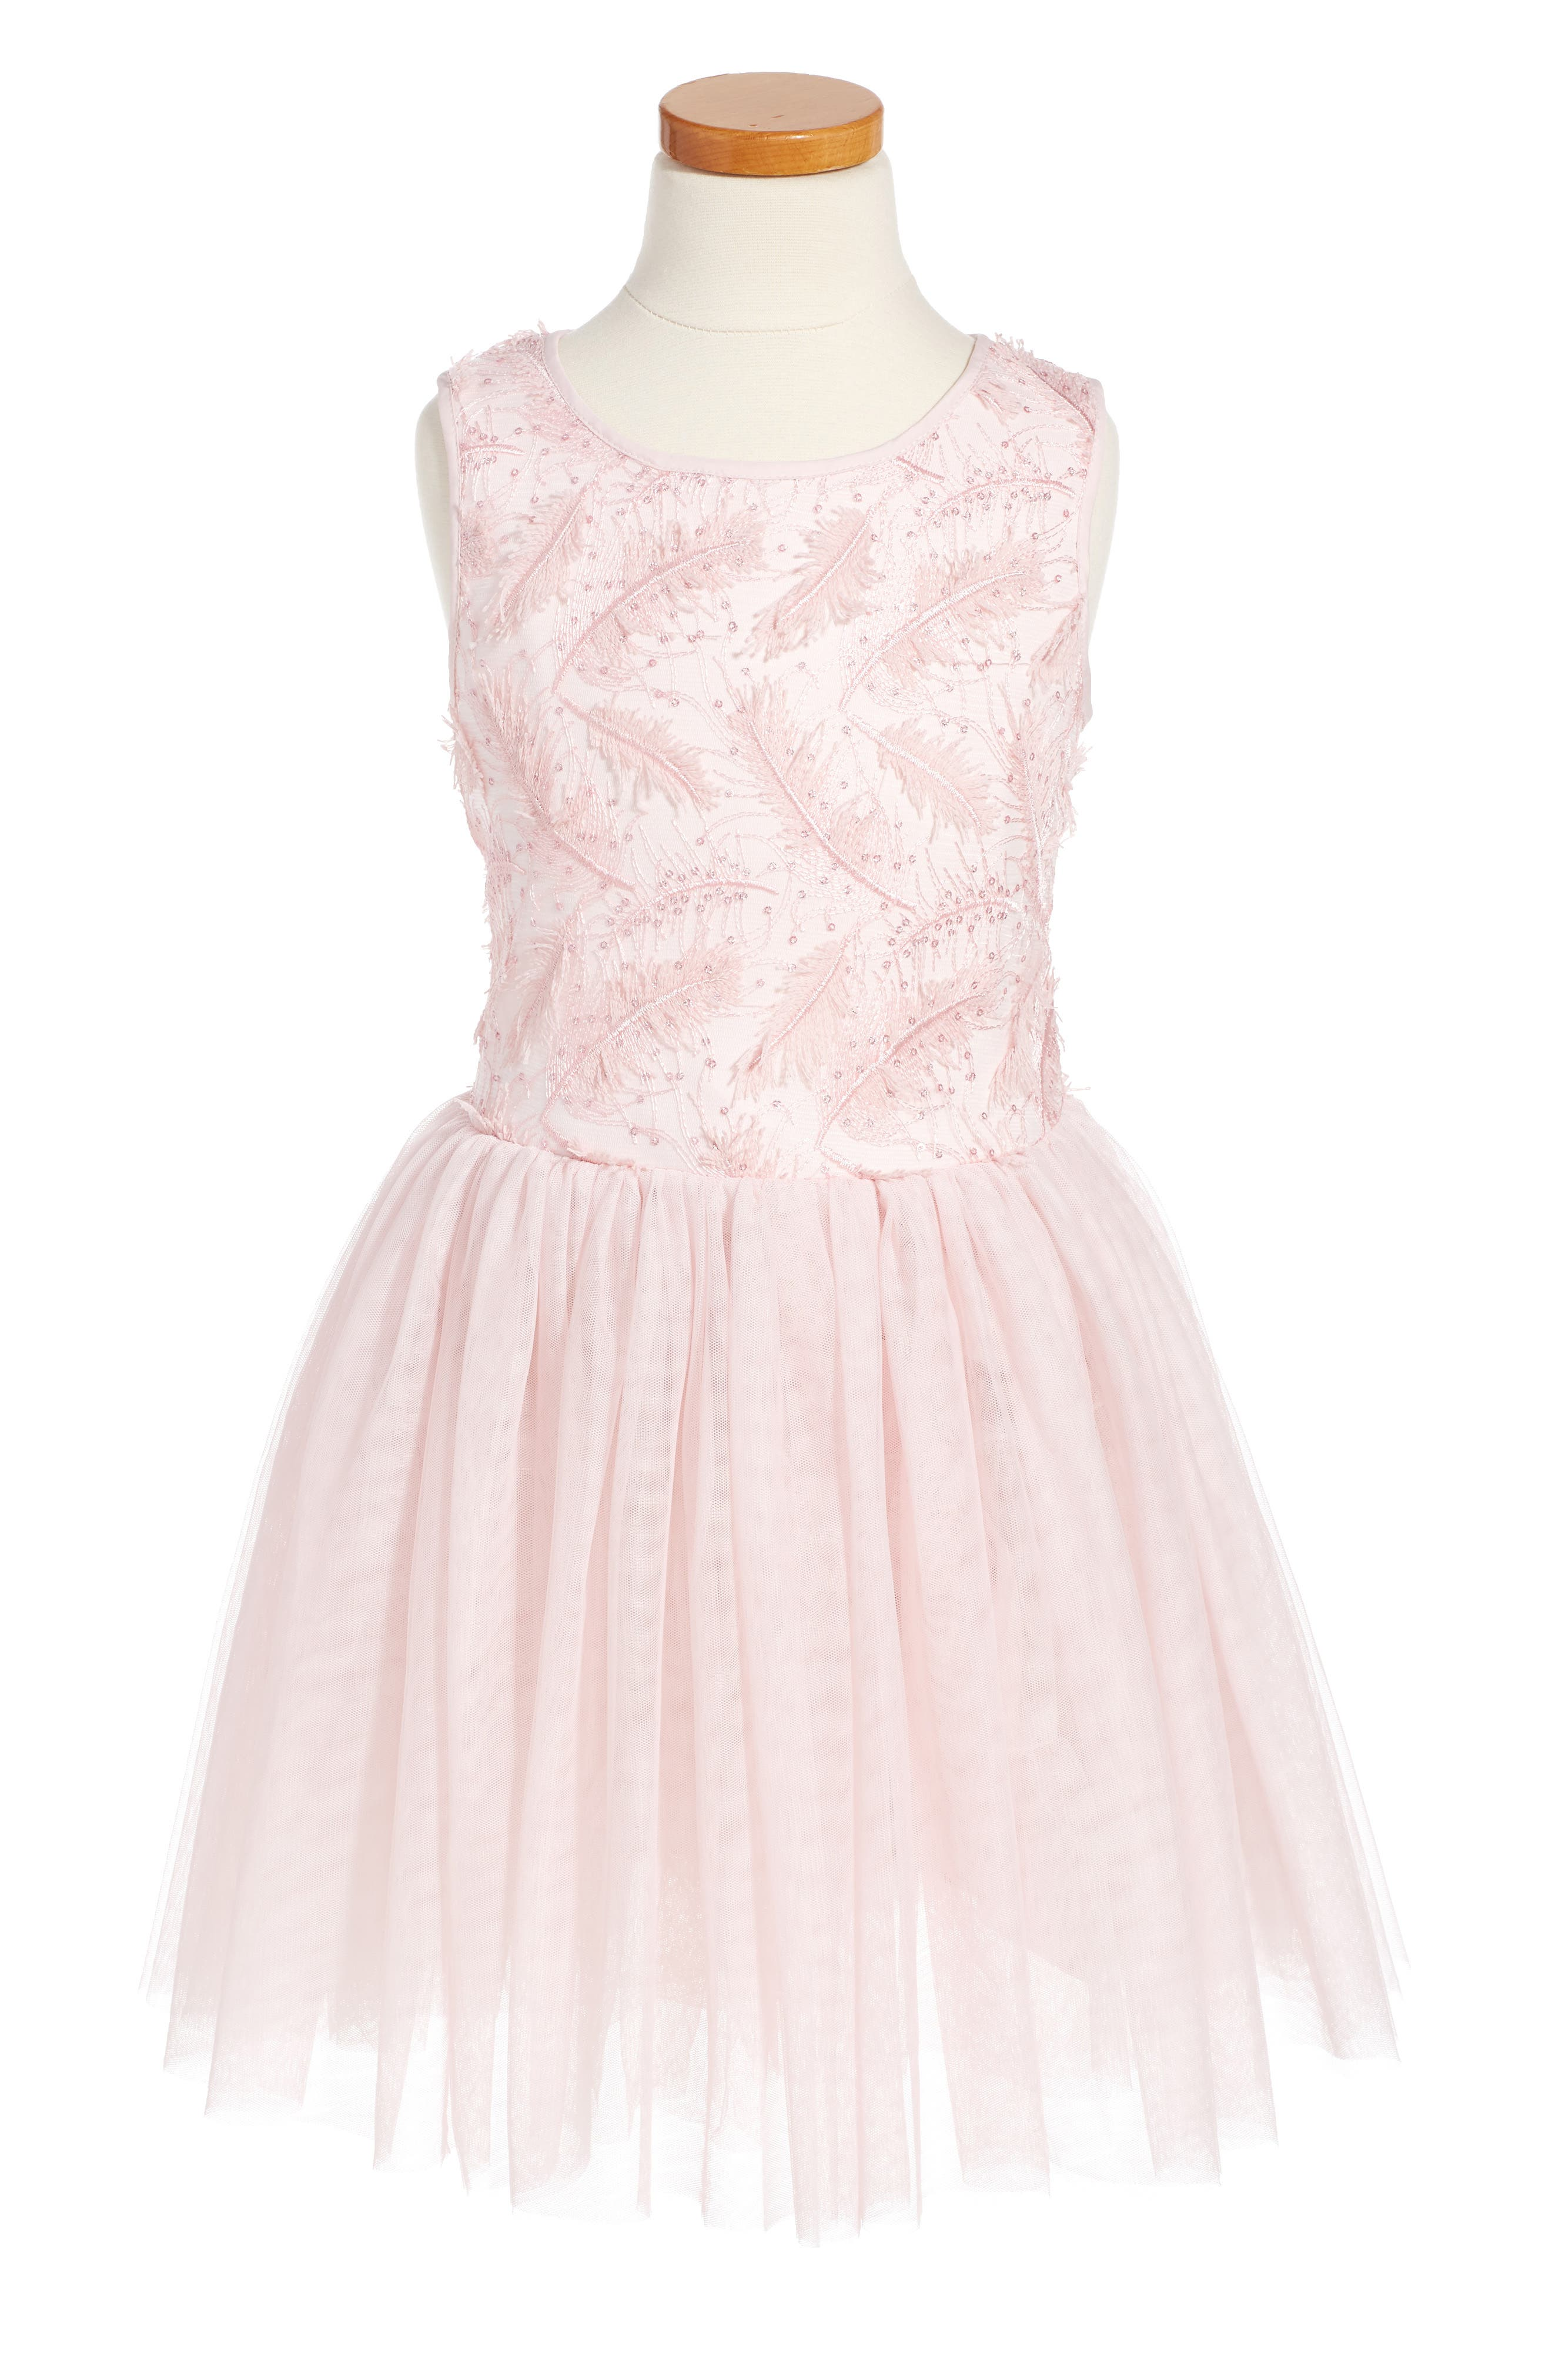 Pippa & Julie Feather Tulle Party Dress (Toddler Girls, Little Girls & Big Girls)